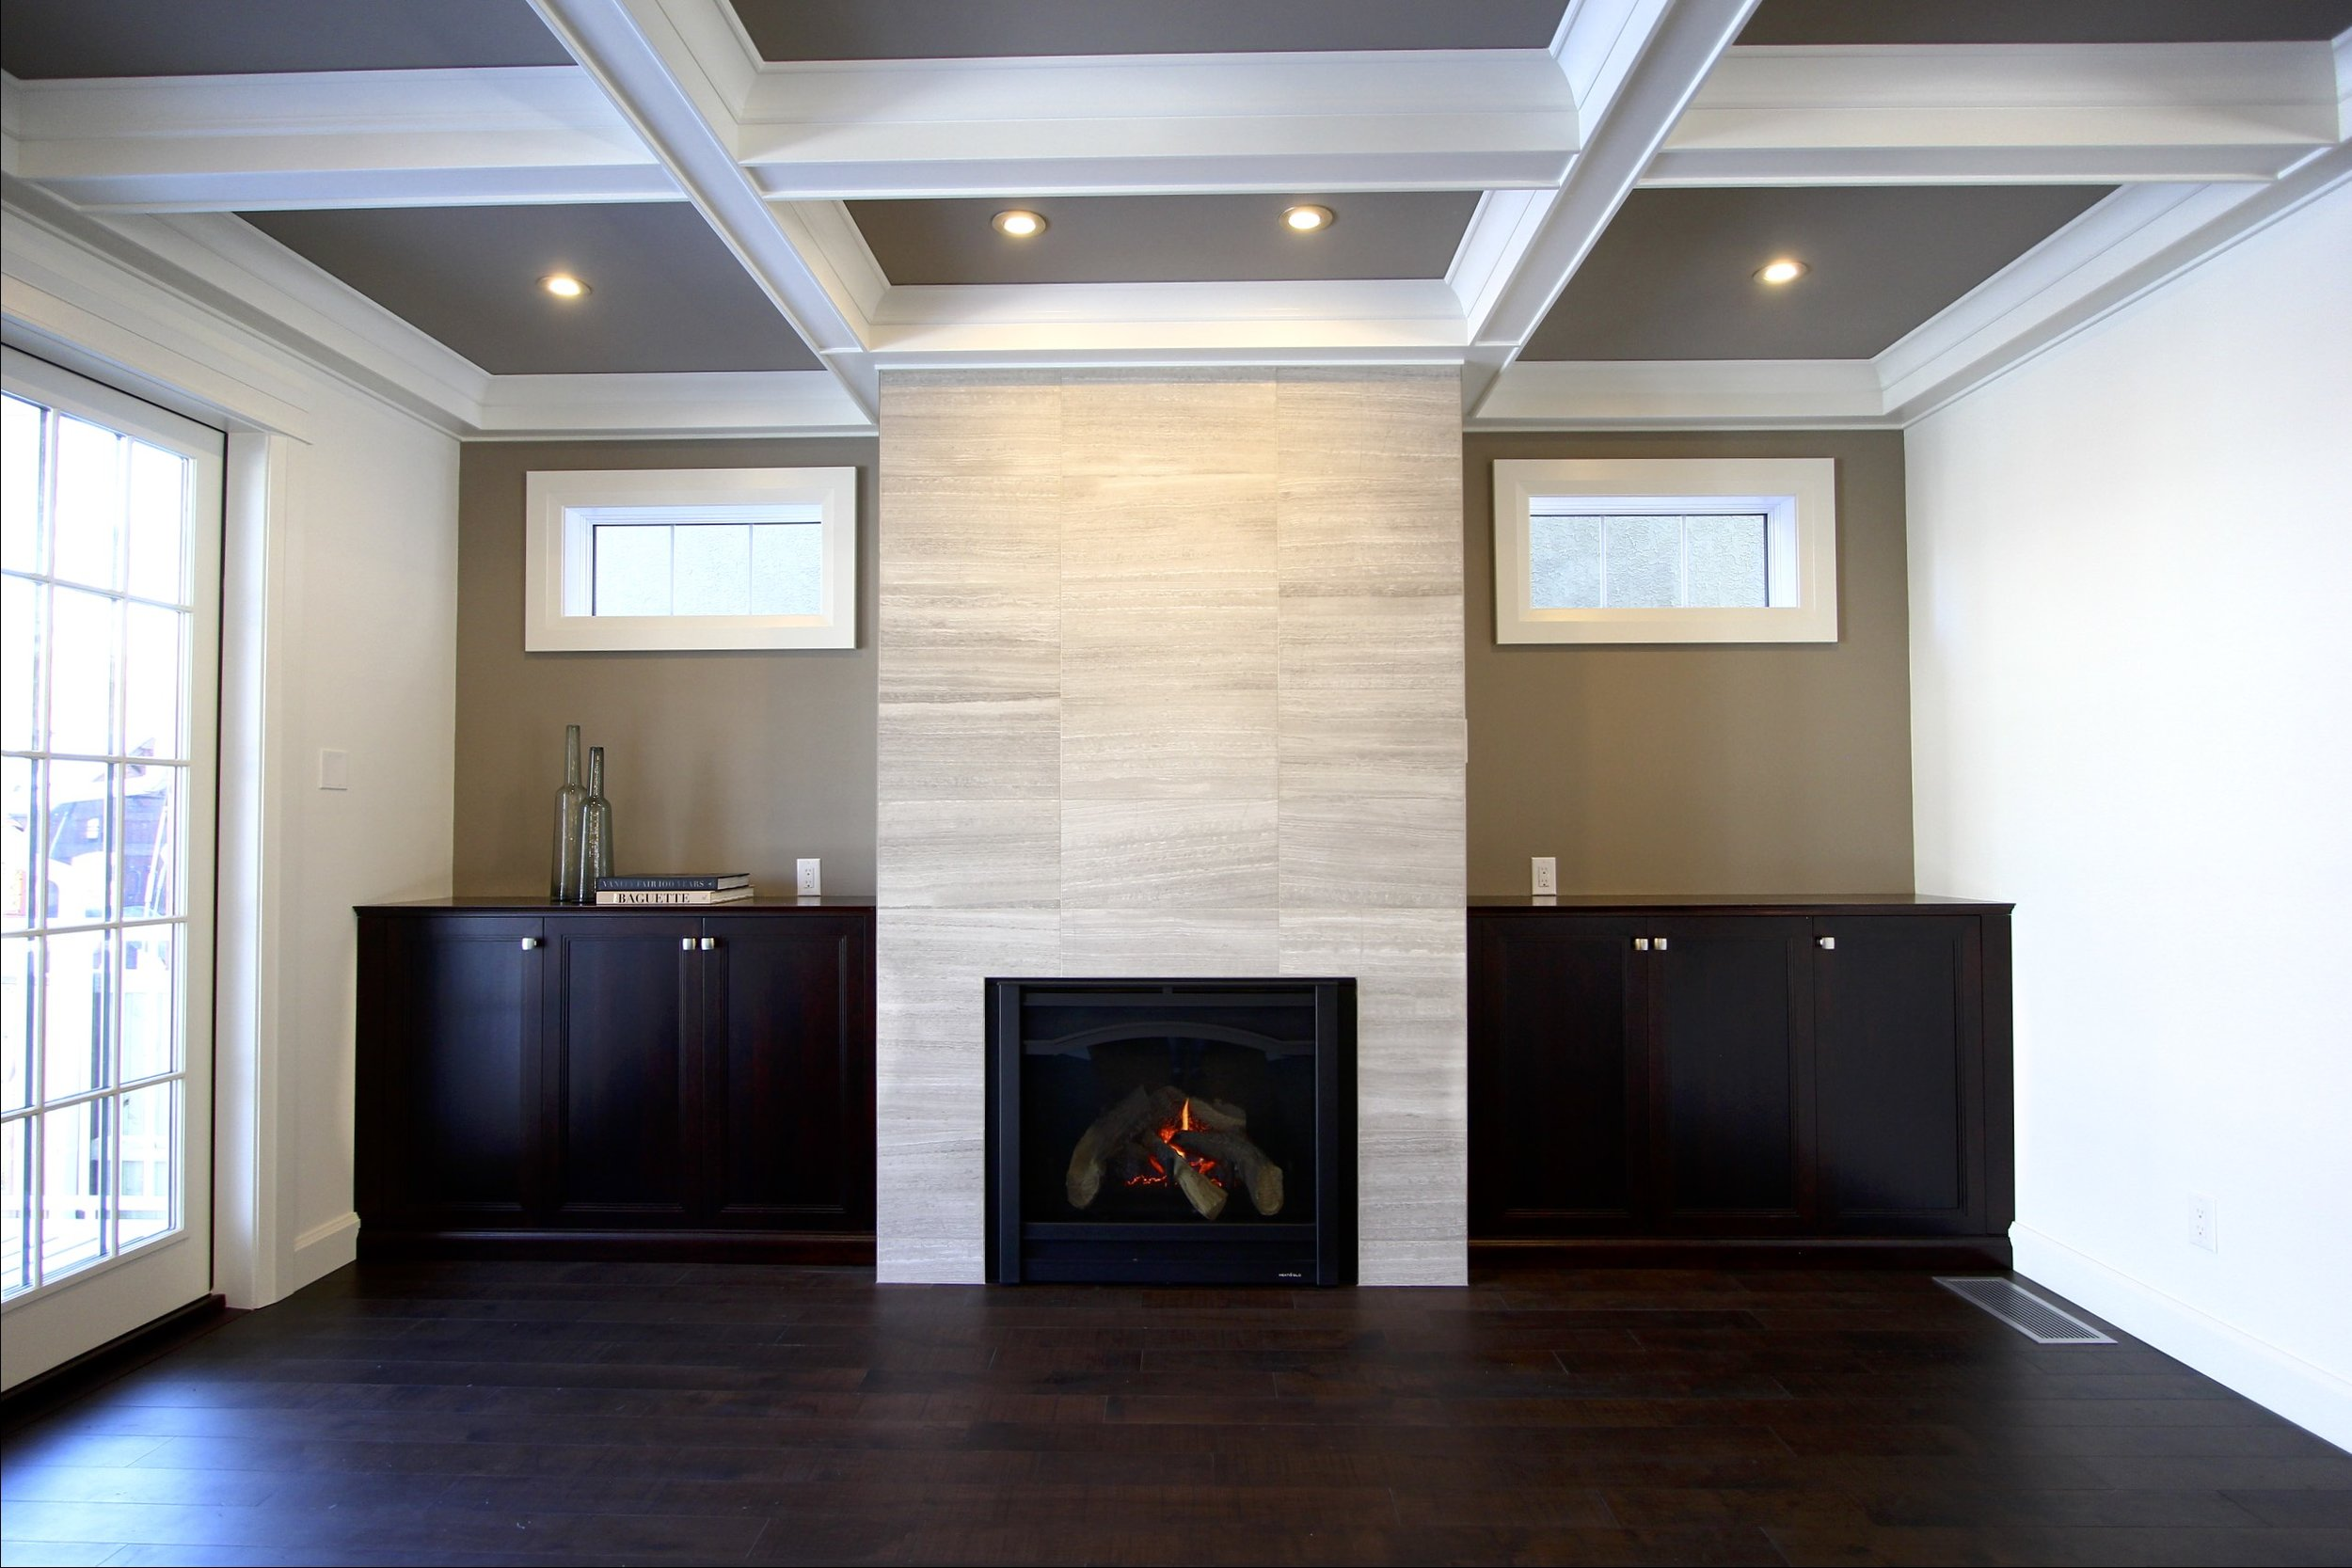 Metric Design Centre, Interior Design, Saskatoon, Residential Design, New Home Build, Custom Millwork, Coffered Ceiling, Custom Cabinetry, Transitional Design, Fireplace, Recessed Lighting, Large Scale Marble Tile, French Doors, Built-ins.jpg